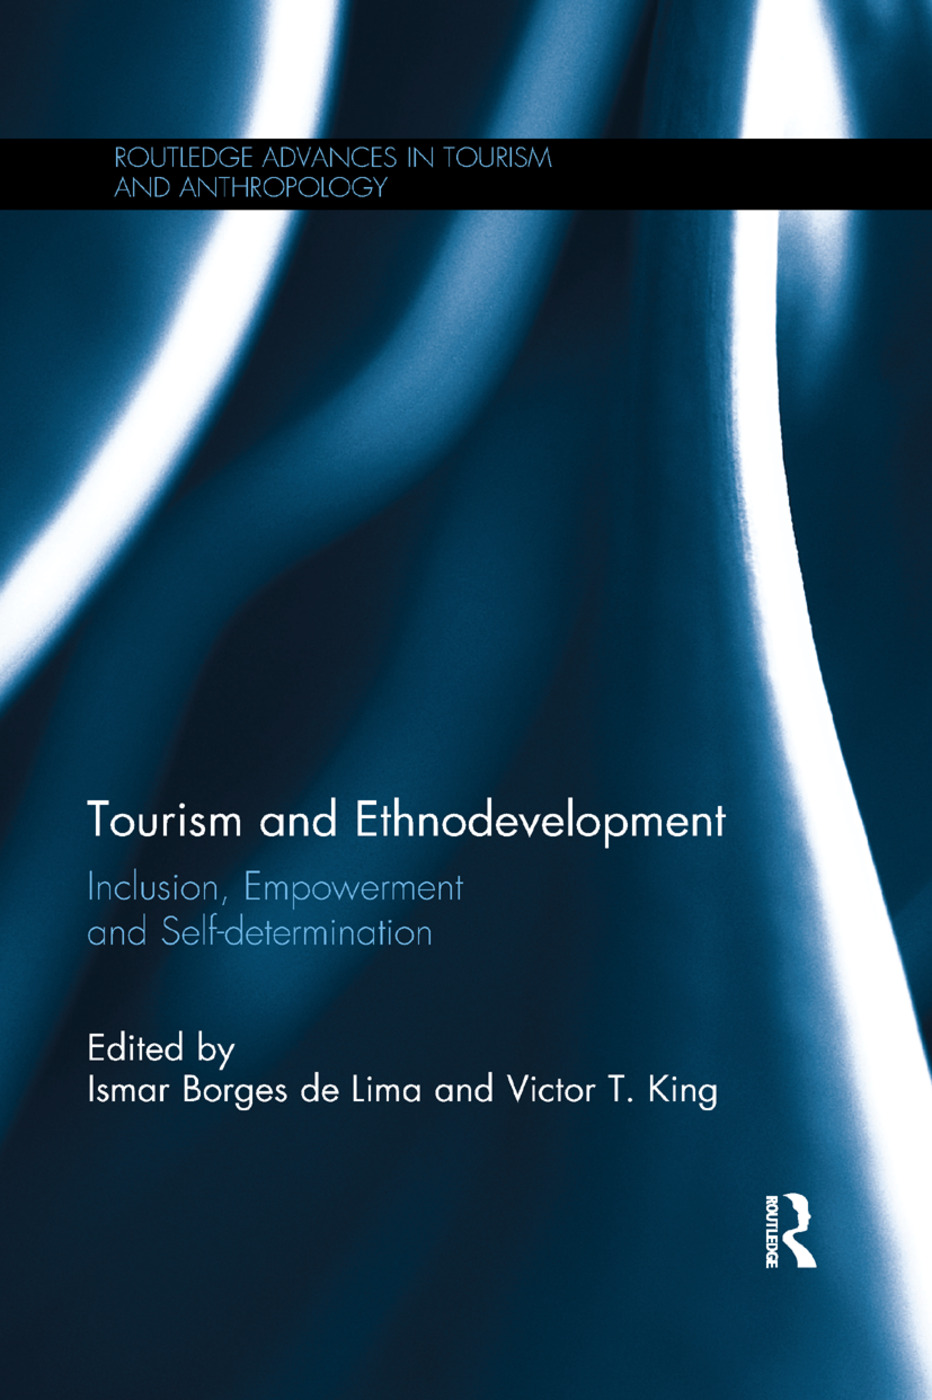 Tourism and Ethnodevelopment: Inclusion, Empowerment and Self-determination book cover